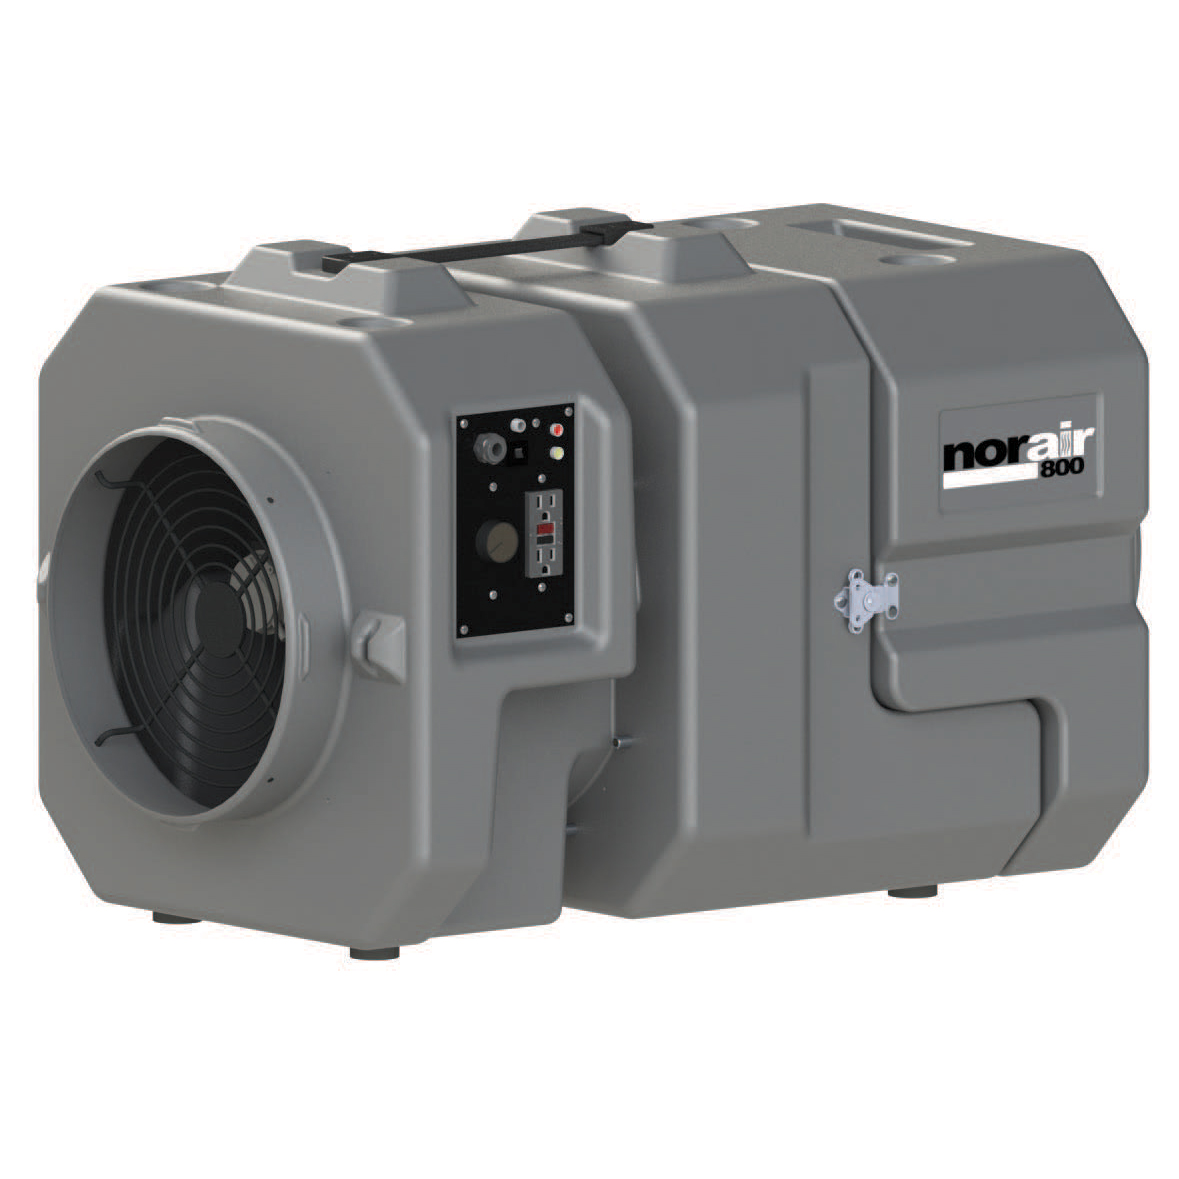 NorAir 800 - Air Scrubber - Smoke Eater - Negative Air Machine